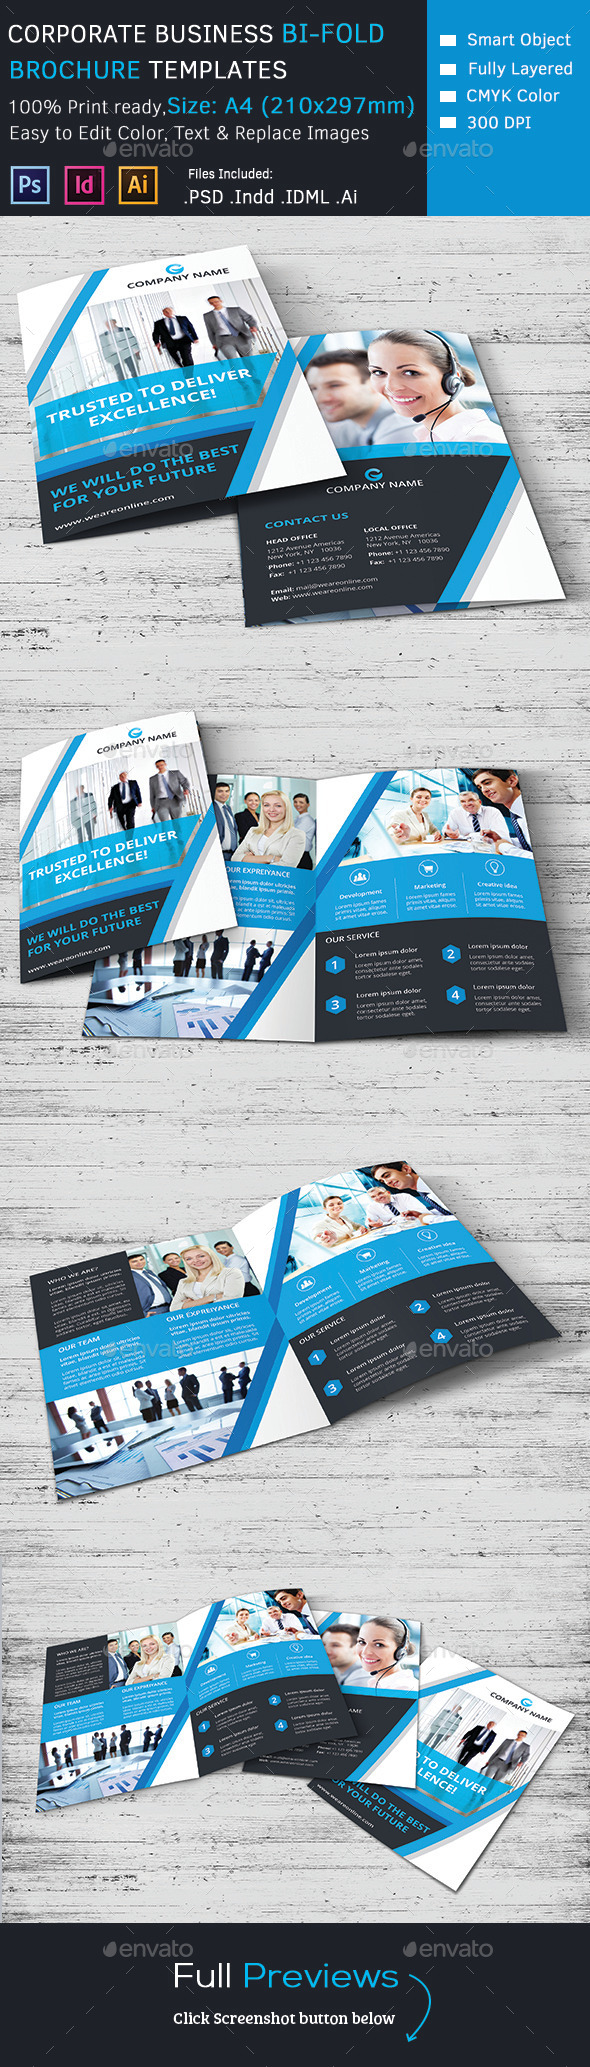 GraphicRiver Corporate Marketing Bi-Fold Brochure 9753608